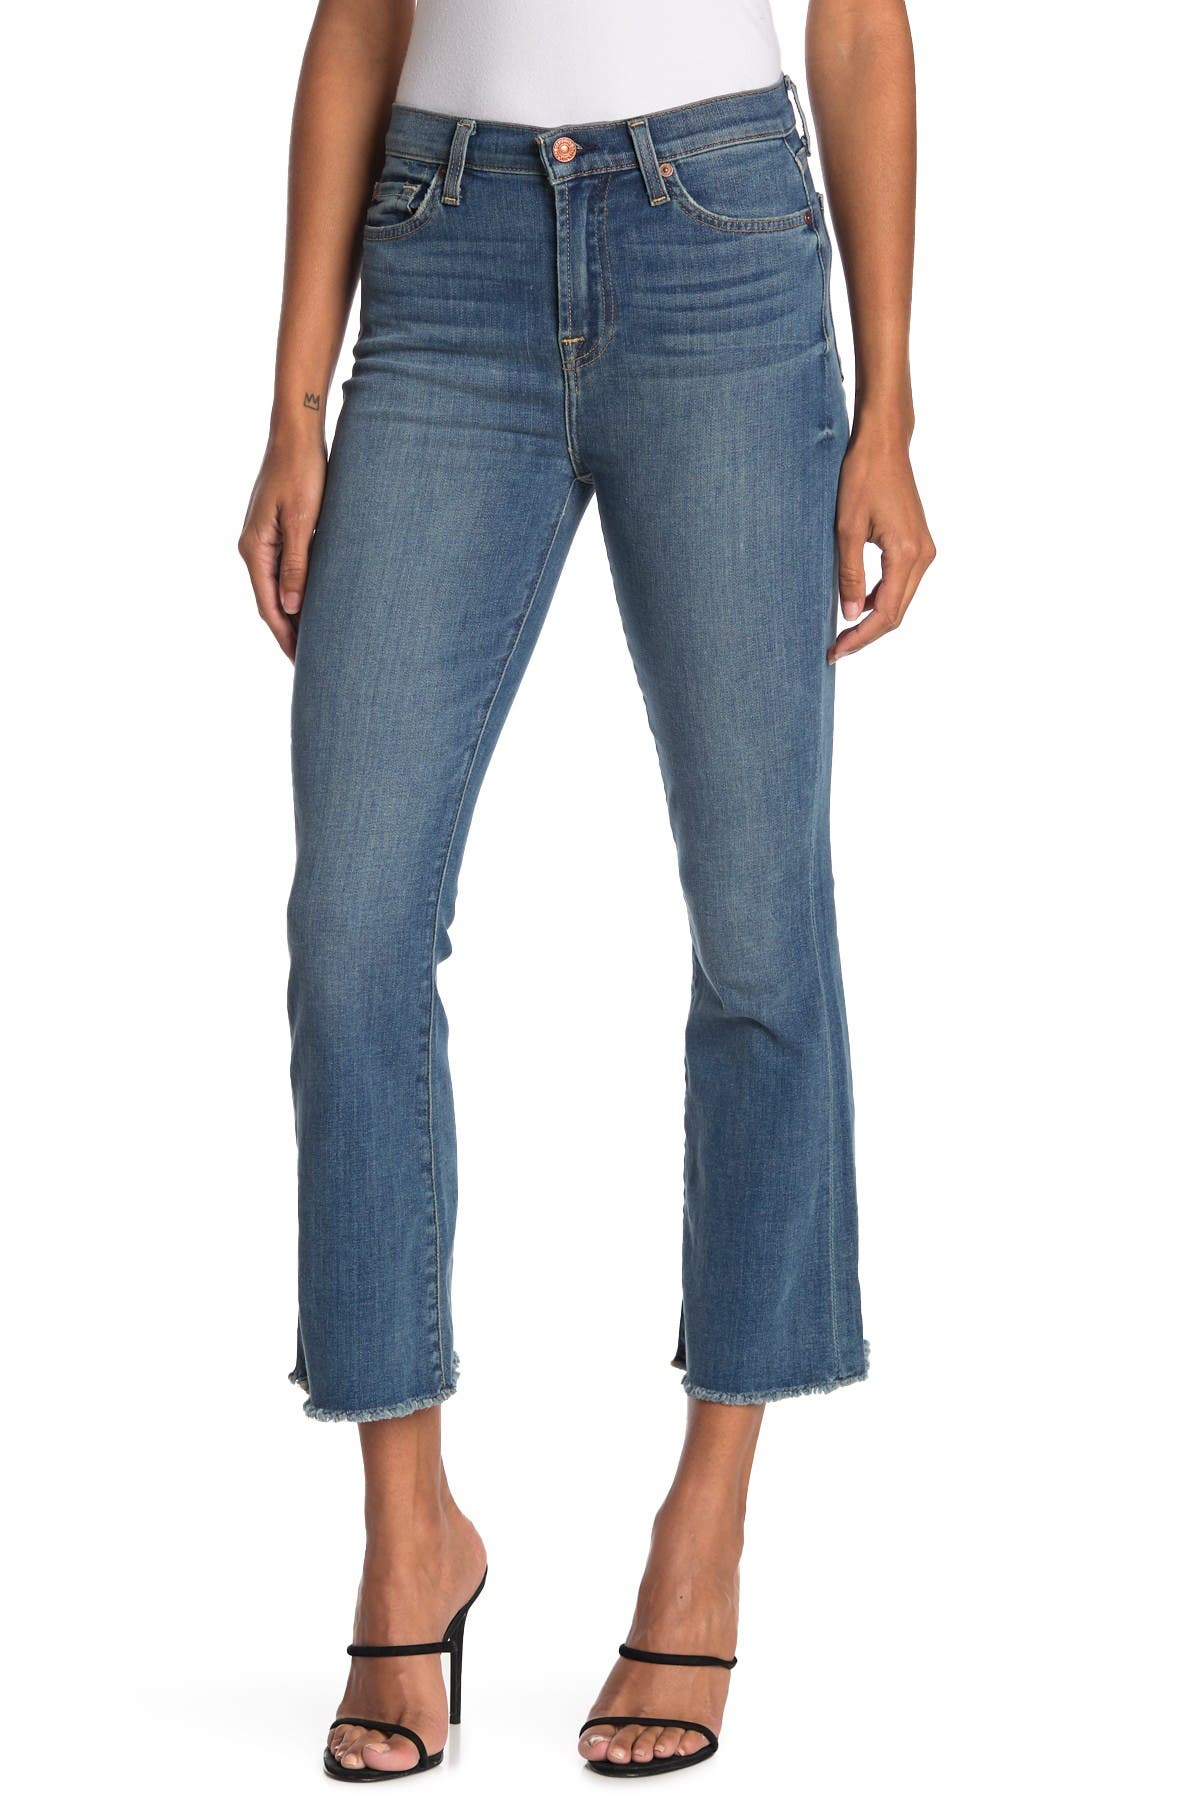 Image of 7 For All Mankind High Waist Slim Kick Crop Jeans